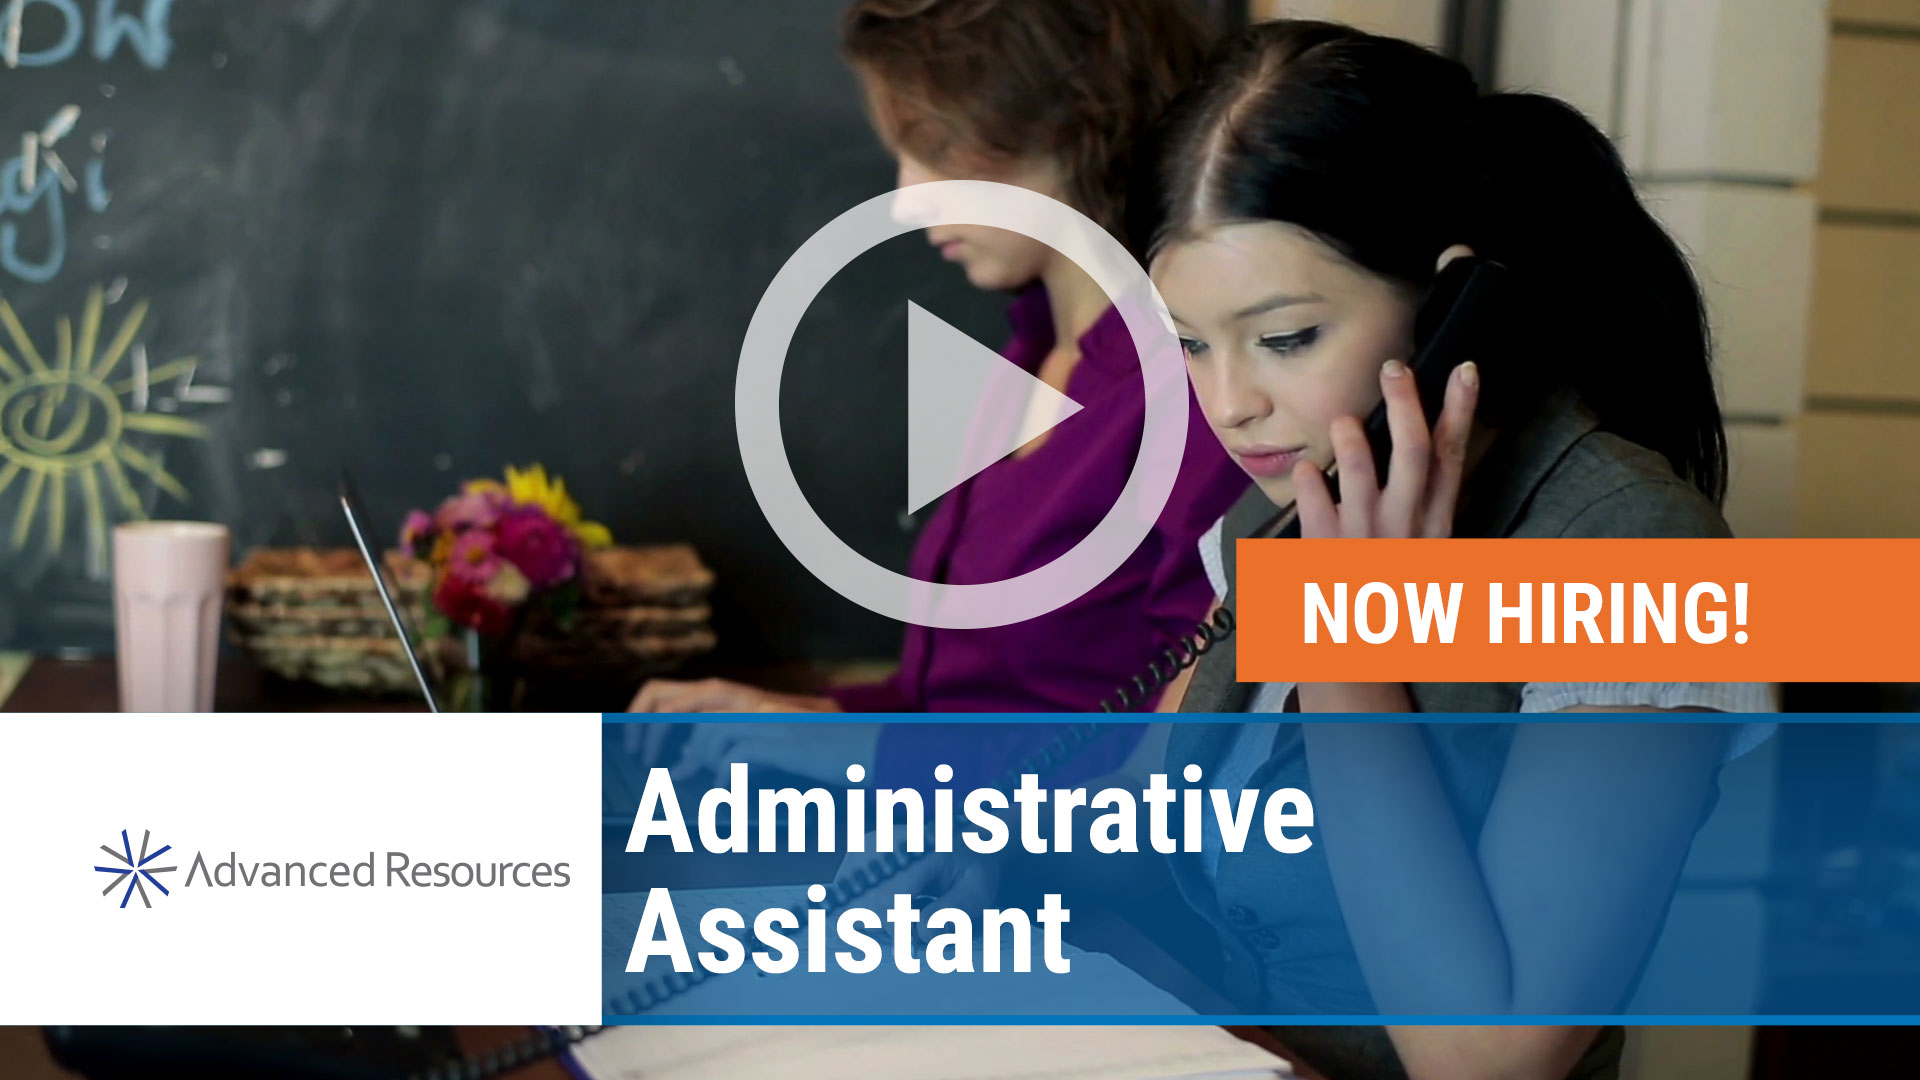 Watch our careers video for available job opening Administrative Assistant in Chicago, IL